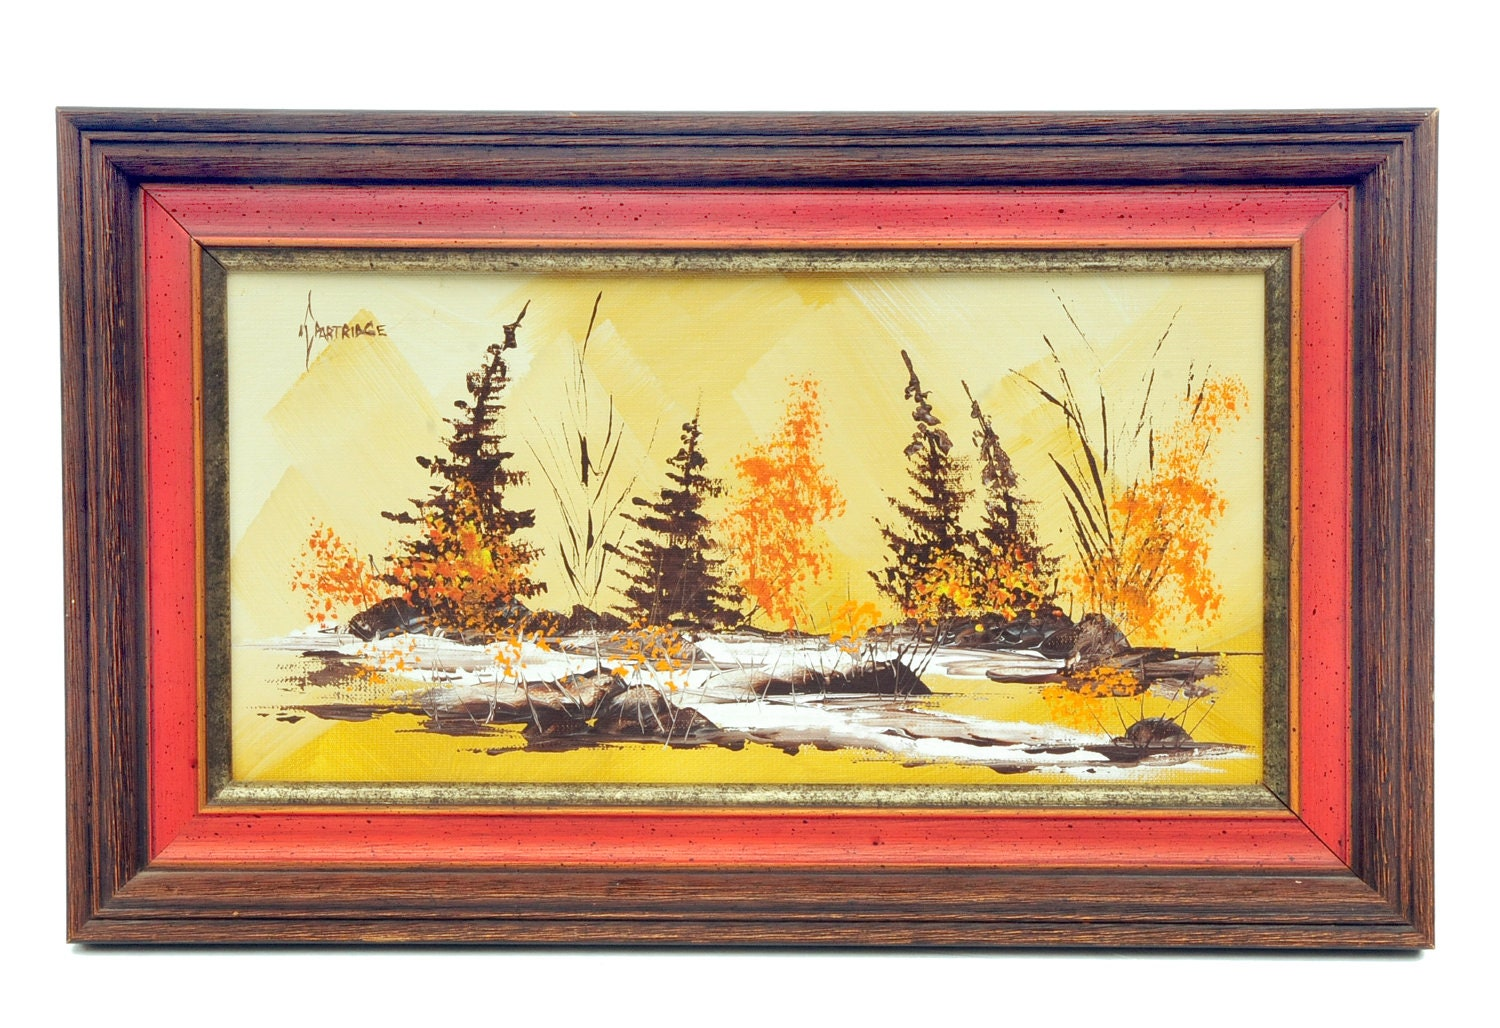 Mid century modern, original oil painting,  forest , pines scene, adirondacks look, gold, brown, amber,orange , recessed wood frame